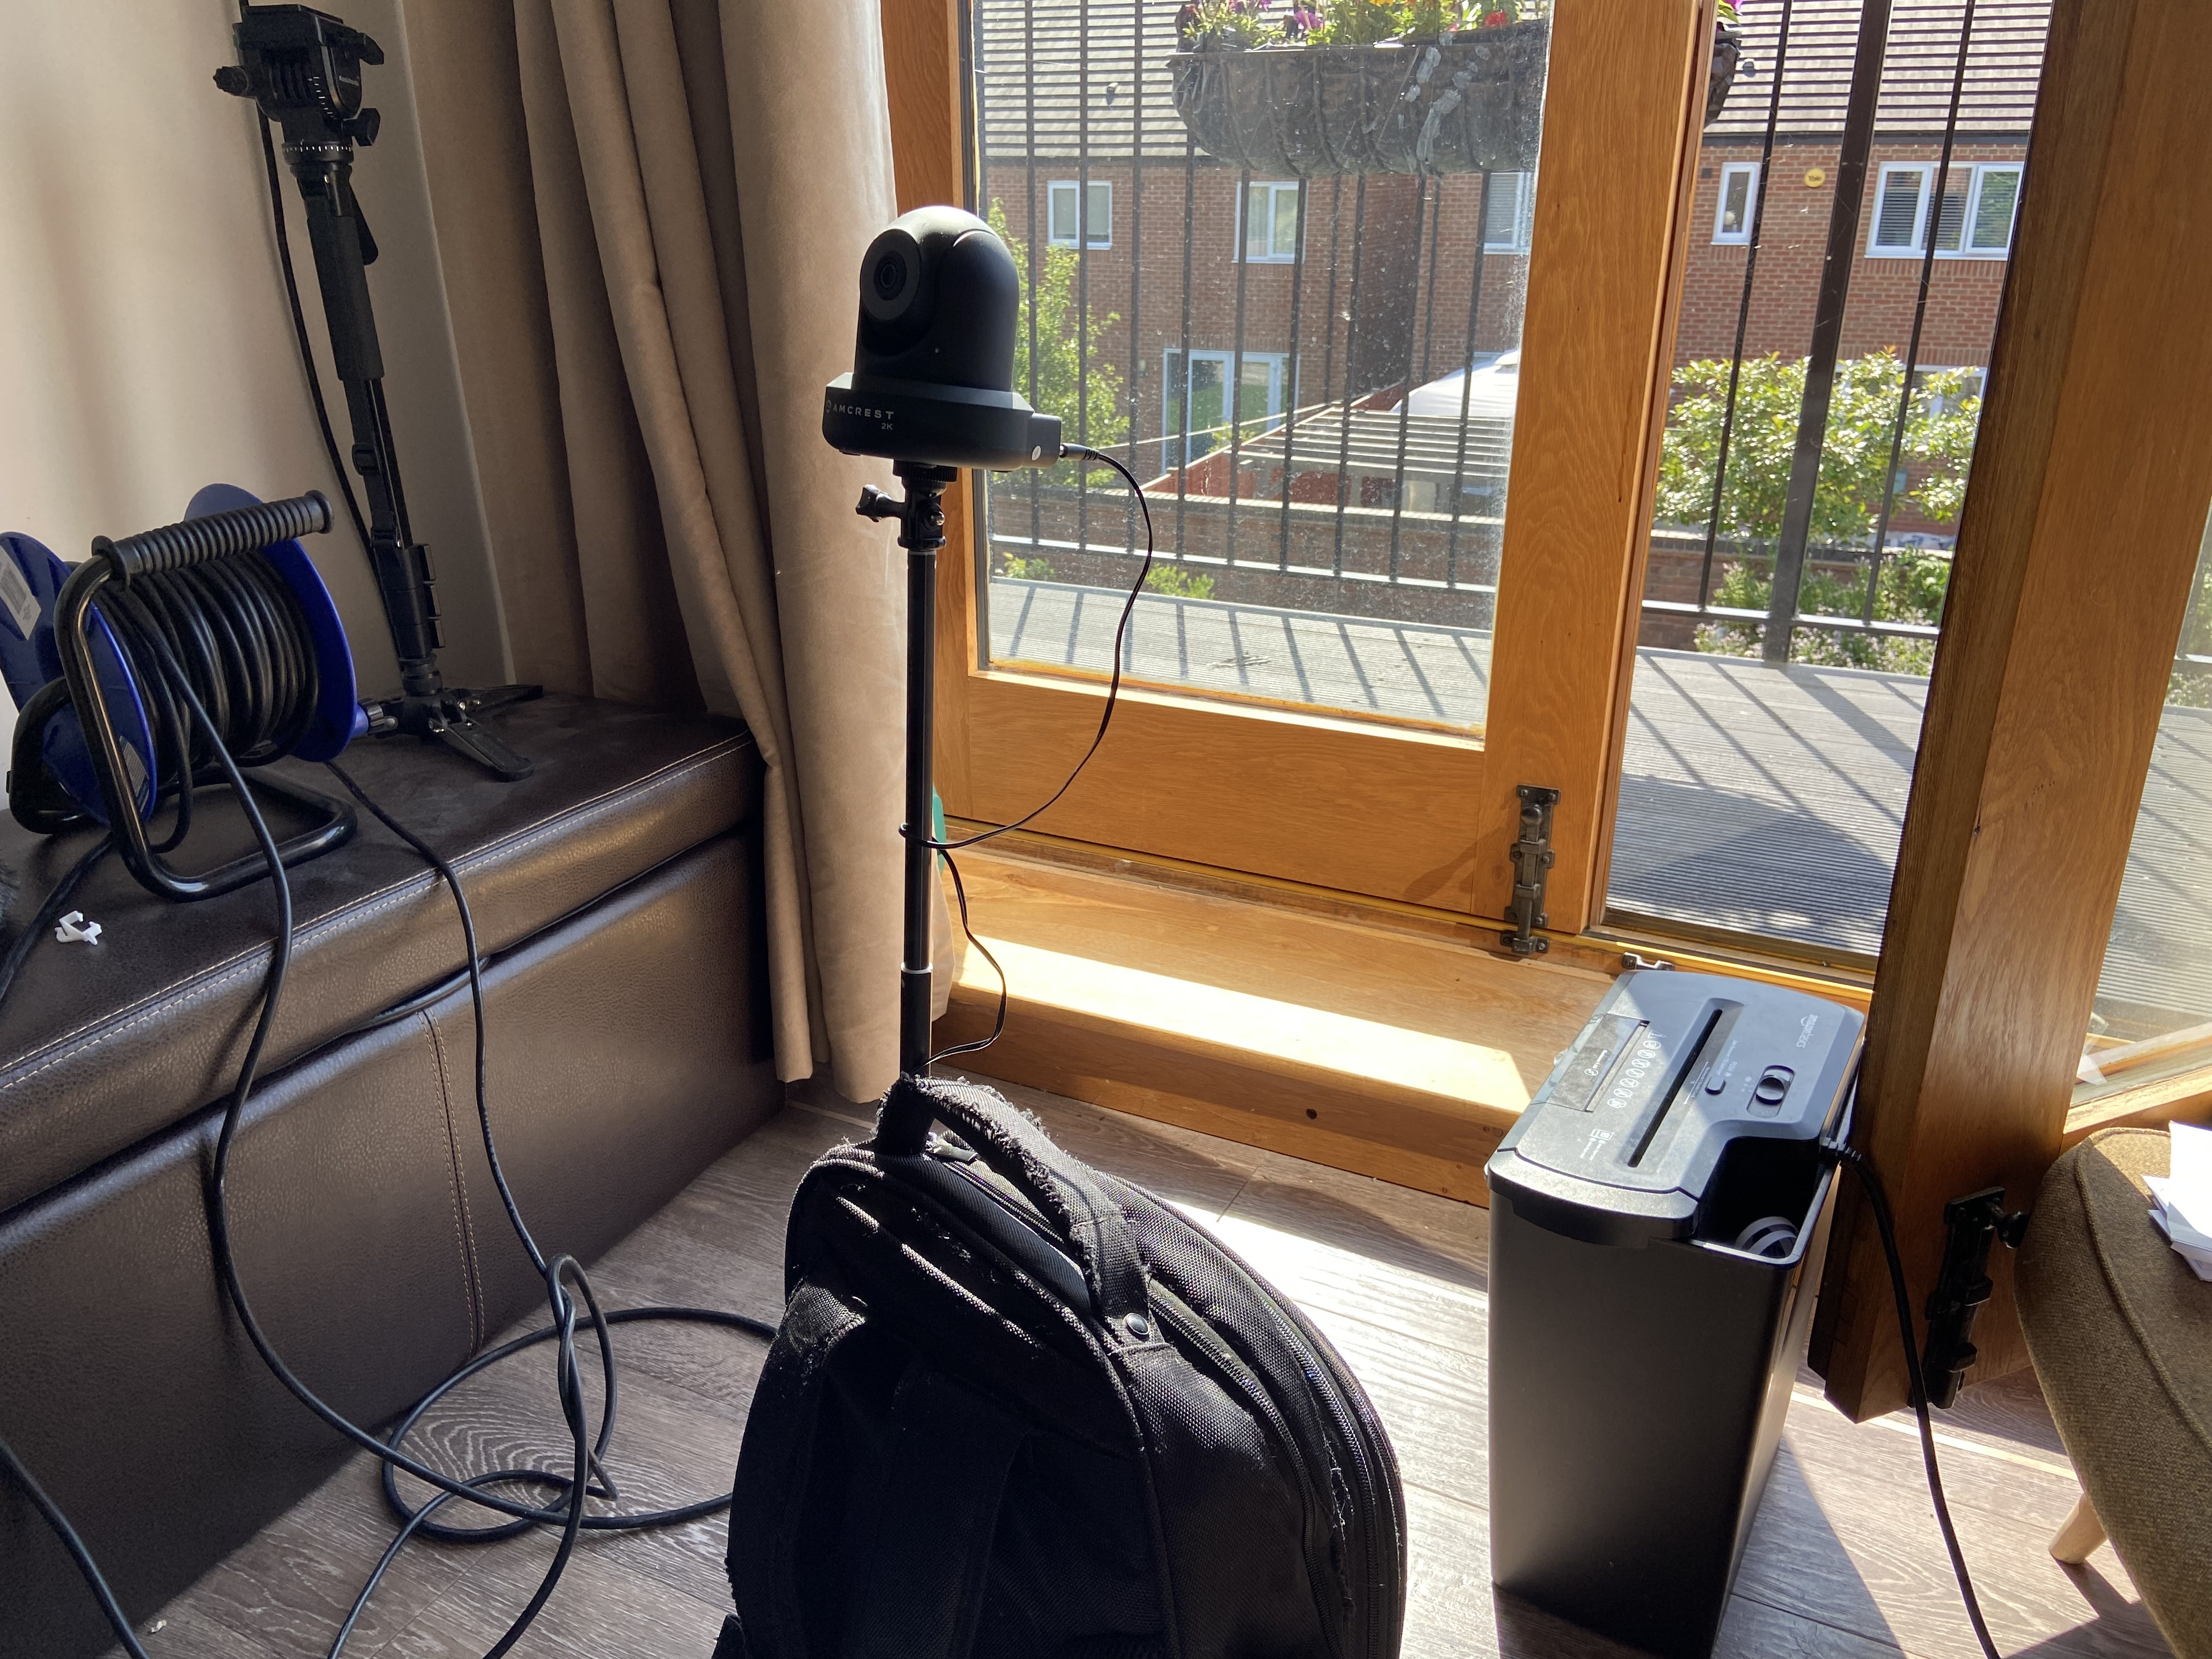 My rucksack which has a selfie stick poking out of it, on top of the stick is a pan/tilt security camera